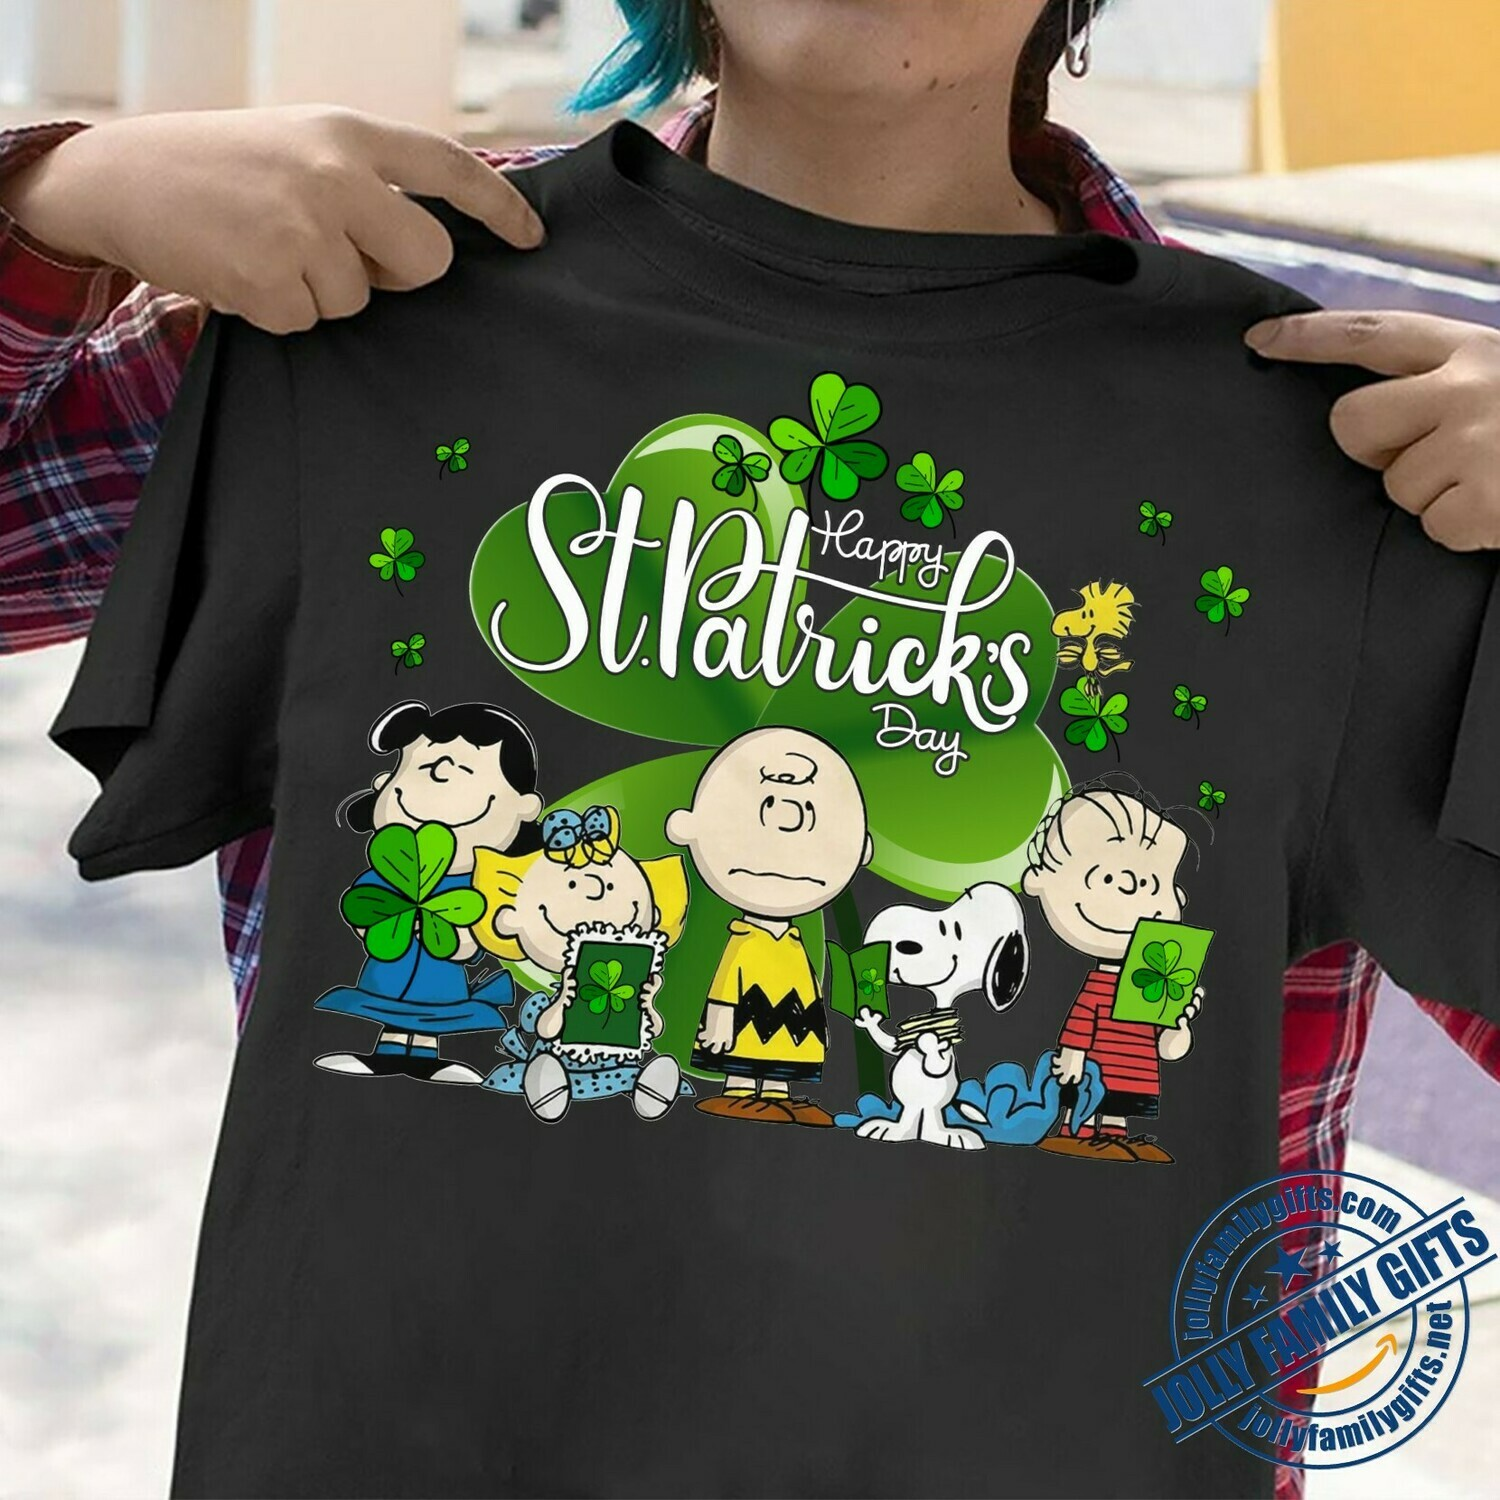 Snoopy,Woodstock,Charlie Brown Lucy Sally and Friends hug Shamrock Clover Happy St. Patrick's Day The Peanuts Movie  Unisex T-Shirt Hoodie Sweatshirt Sweater Plus Size for Ladies Women Men Kids Youth